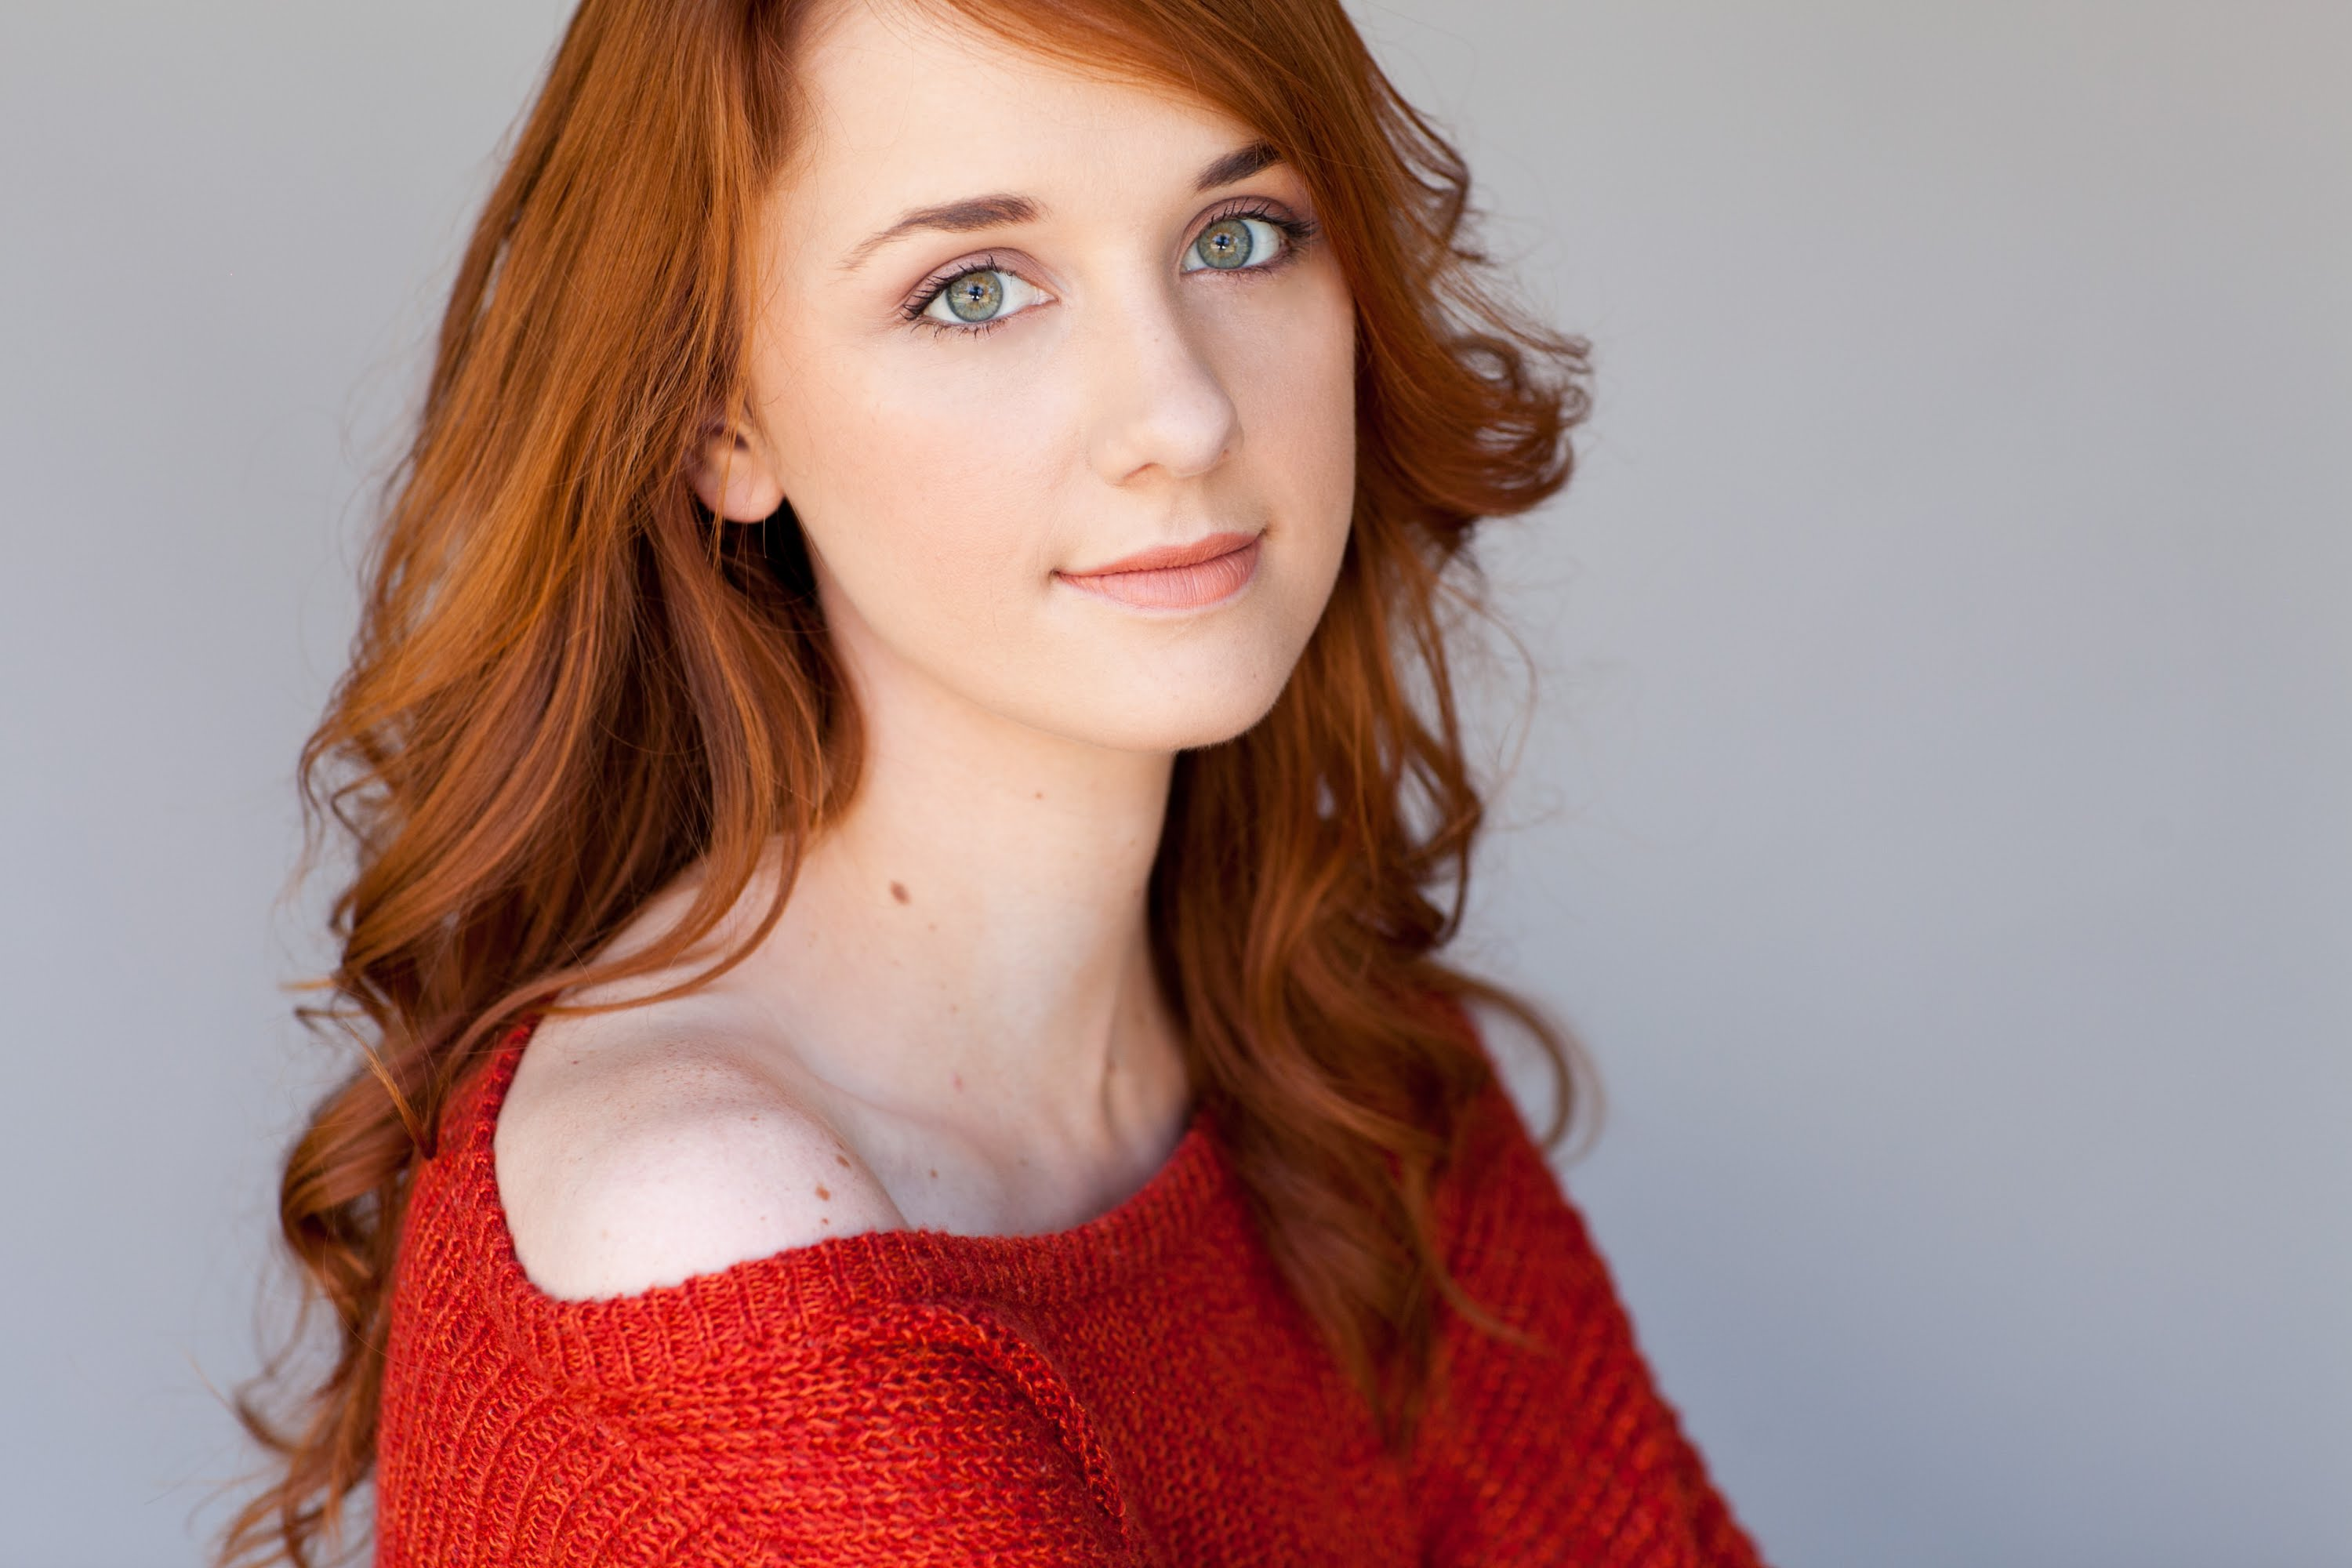 Sunny reccomend Singer actress redhead